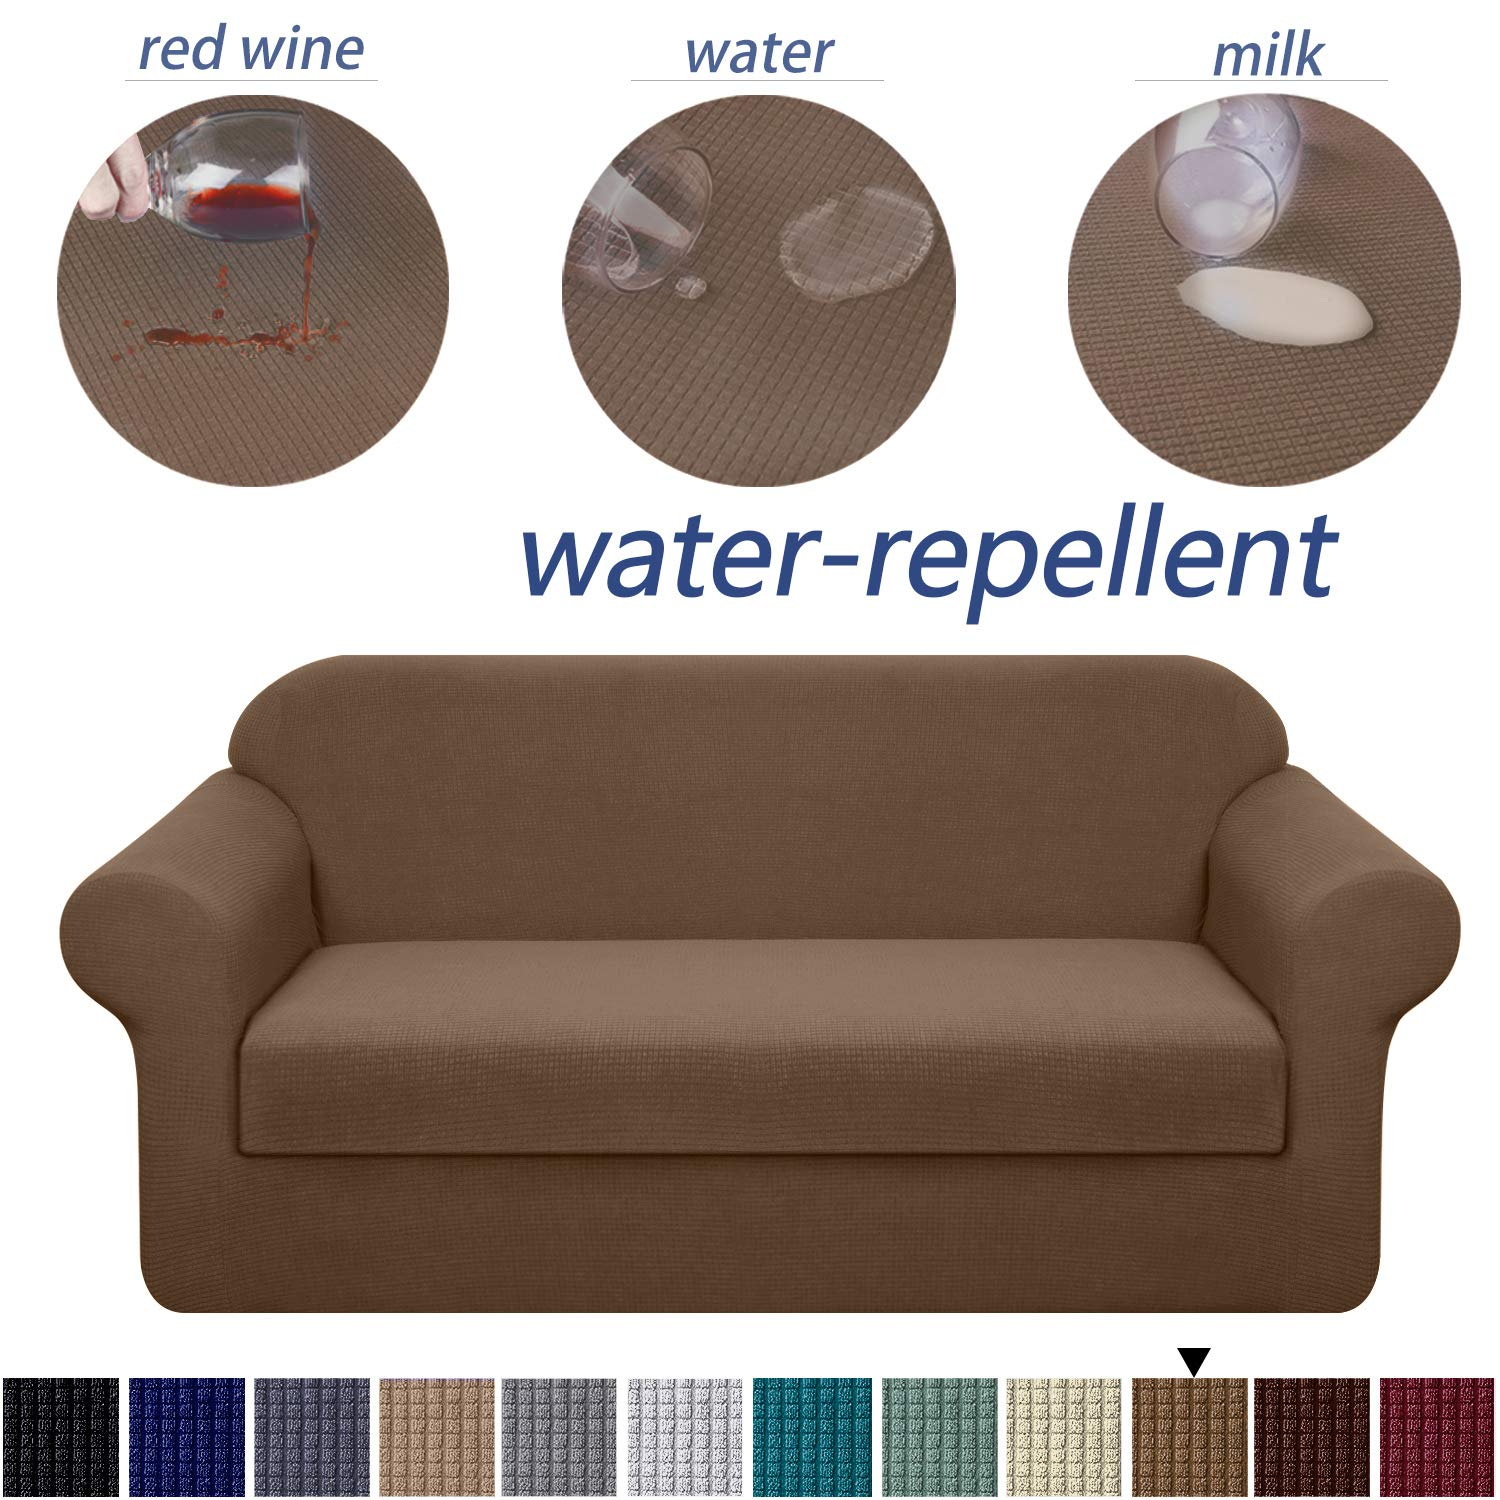 Granbest Stretch Sofa Slipcovers 3 Cushion Couch Covers Water-Repellent Pet Furniture Covers Dog Couch Protectors (Coffee, Medium-2 Pieces)